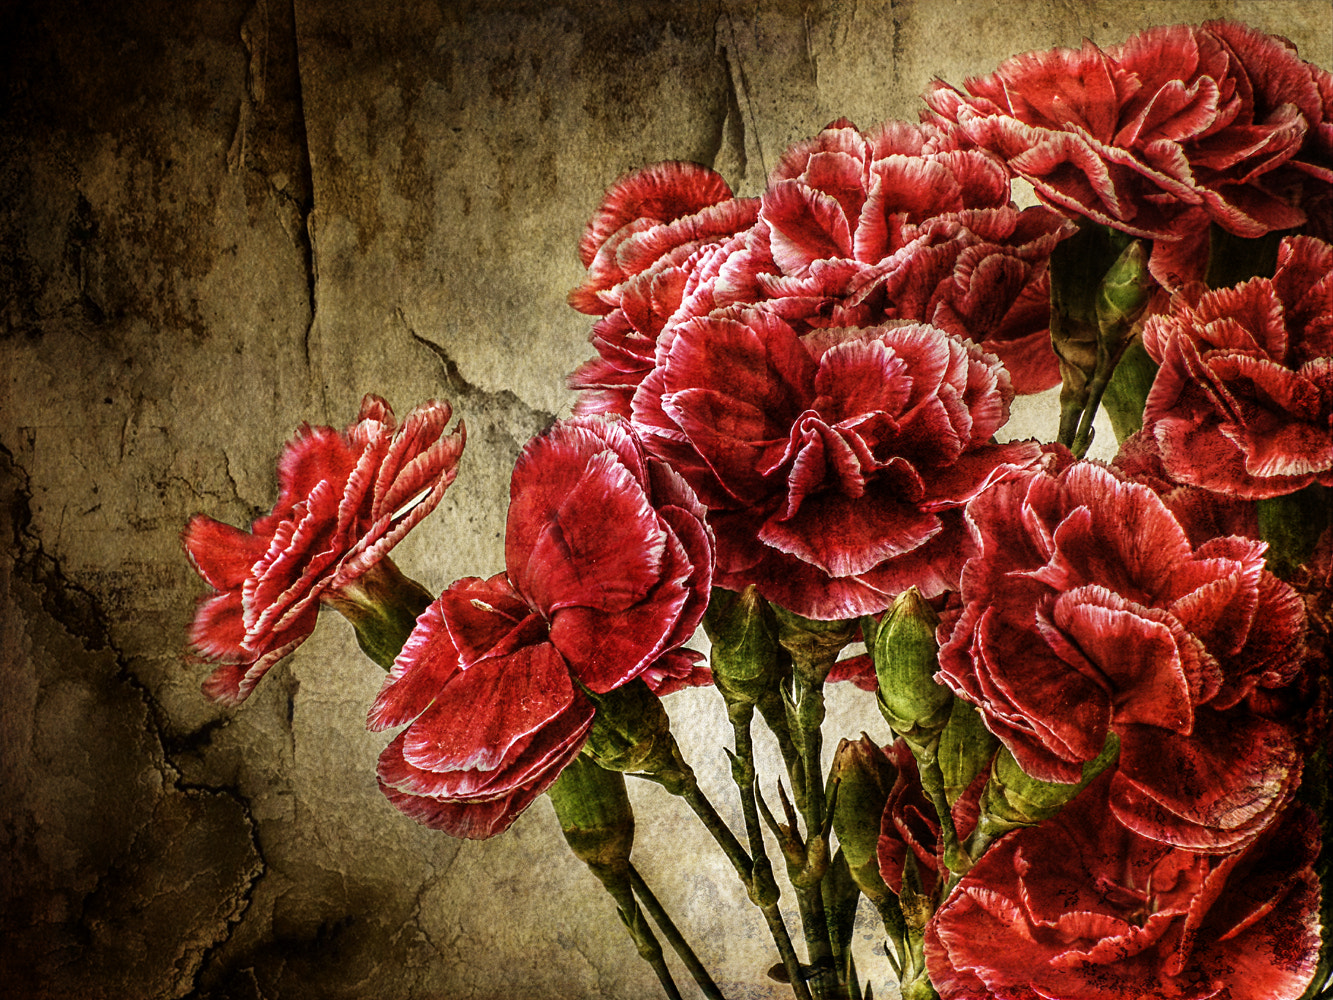 Photograph Carnations by Link Bekka on 500px